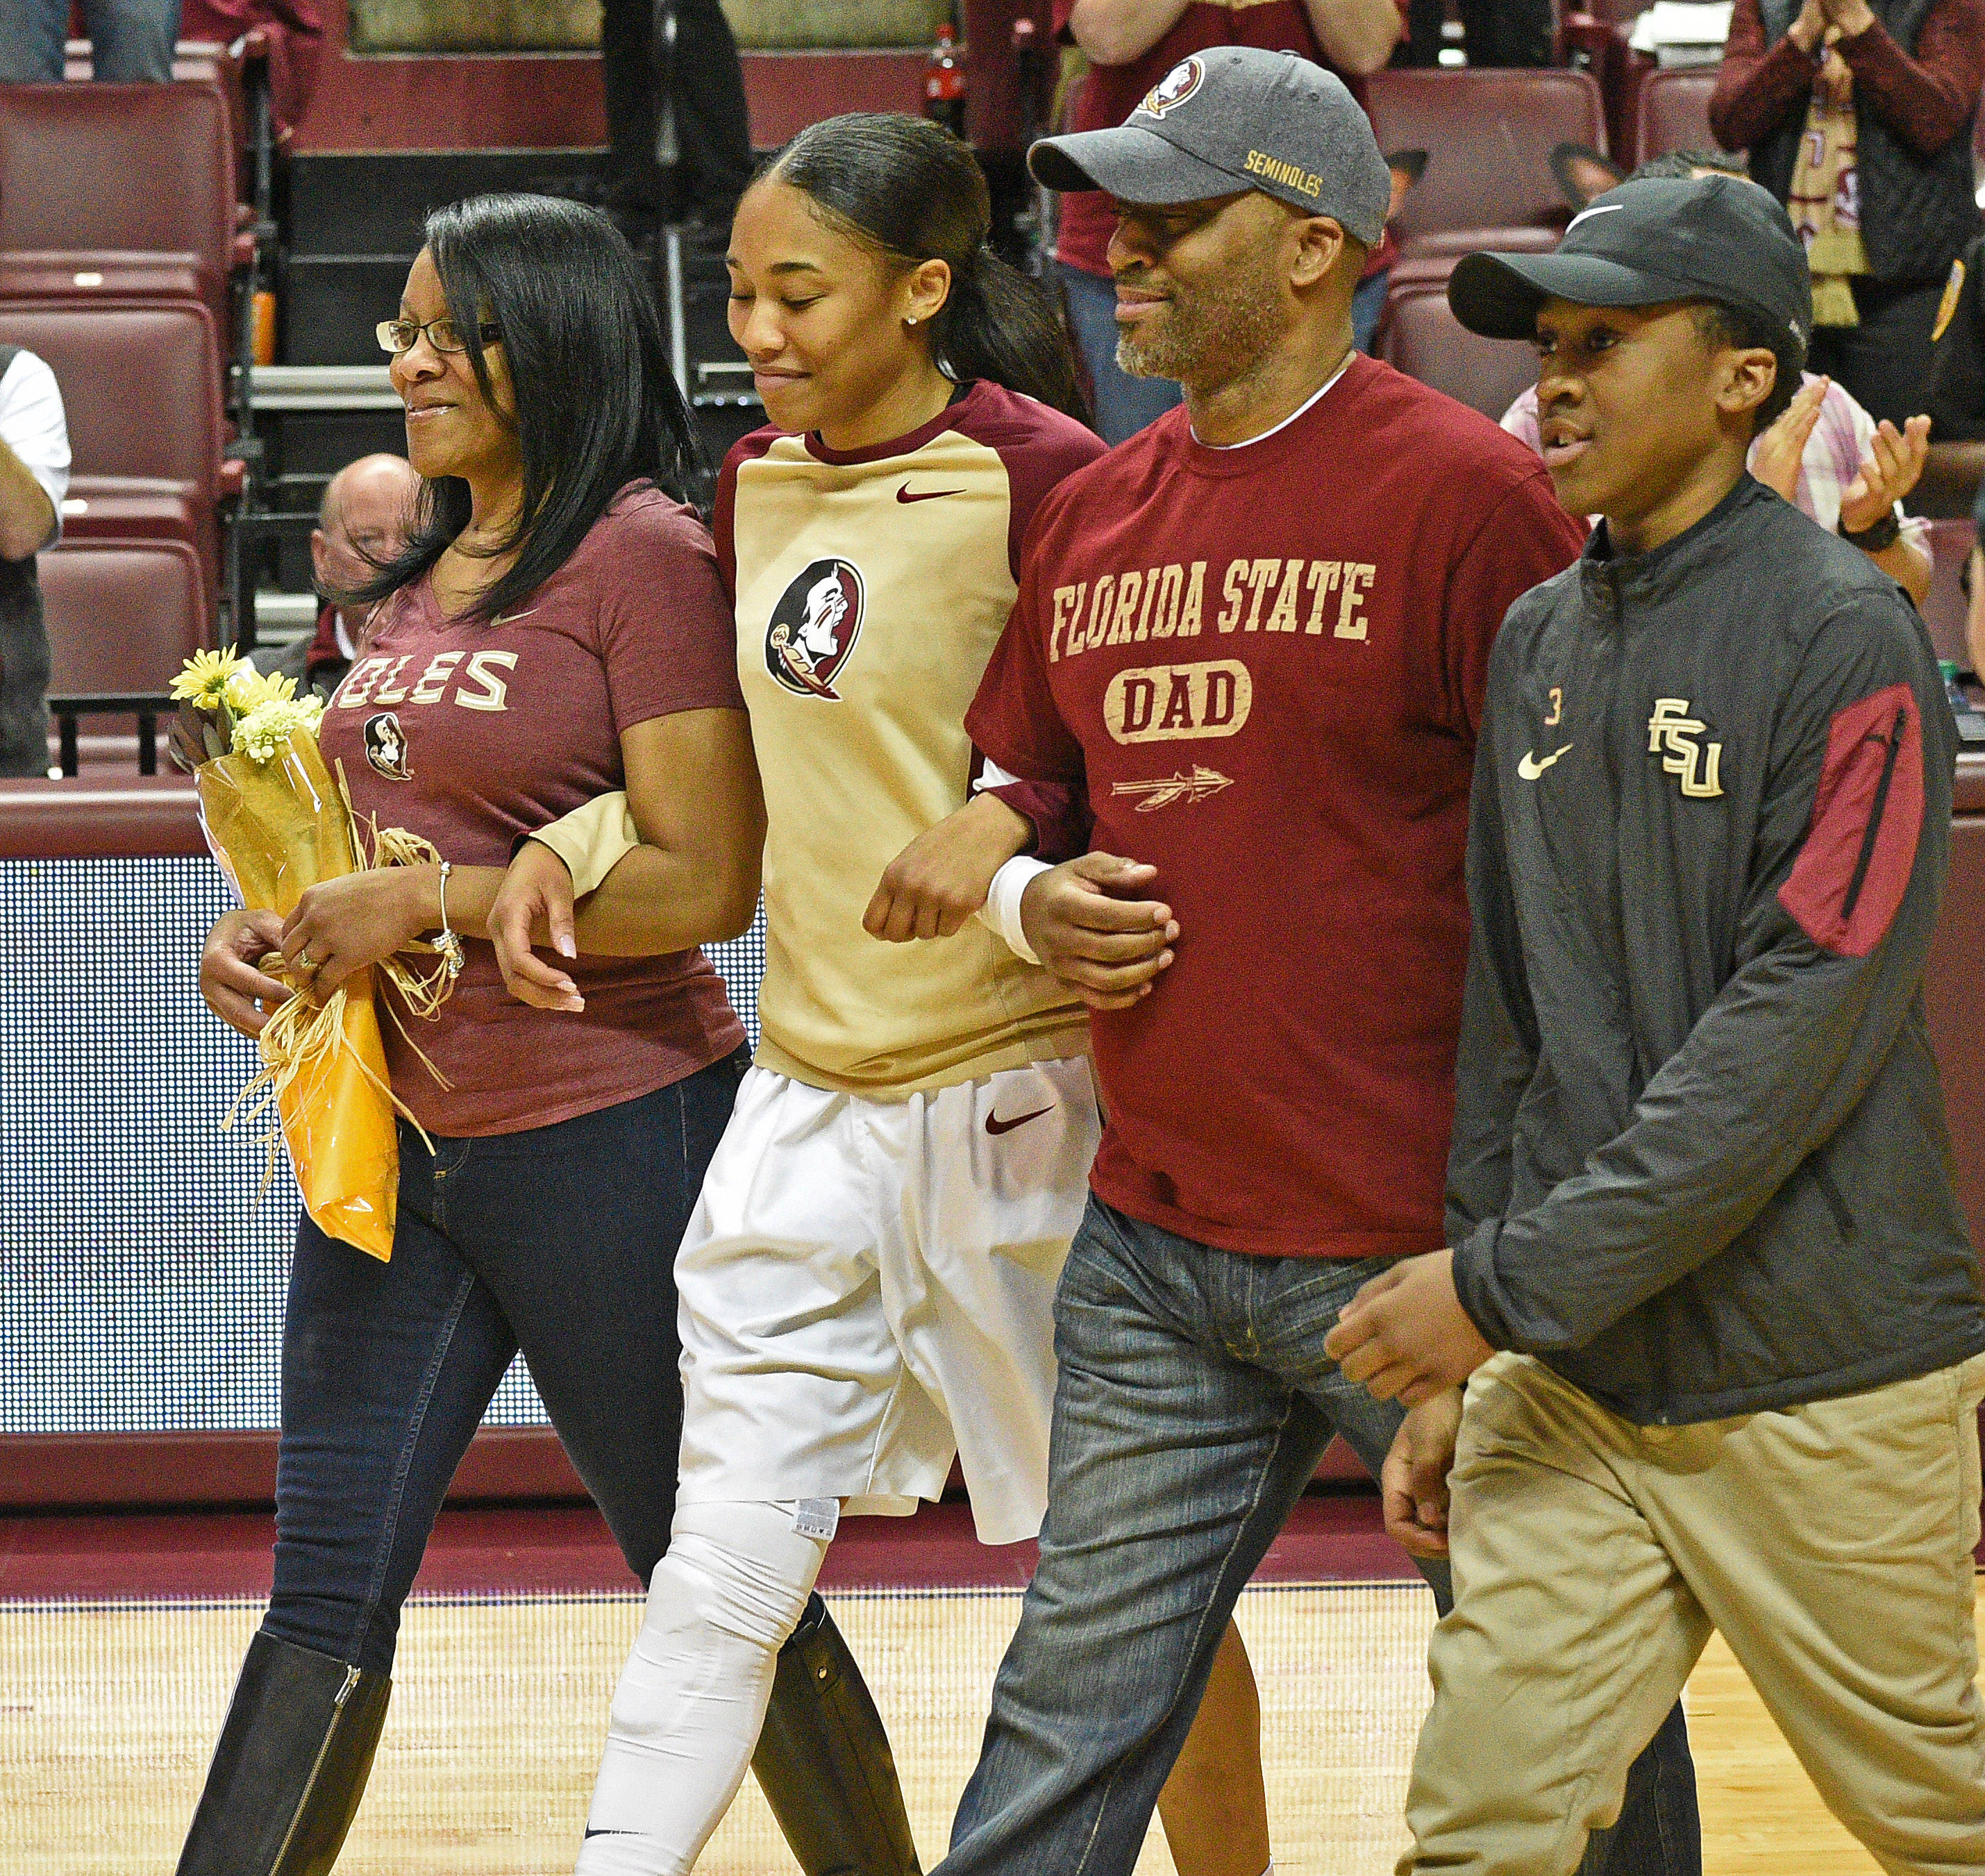 #FSUWBB vs. Miami Photos